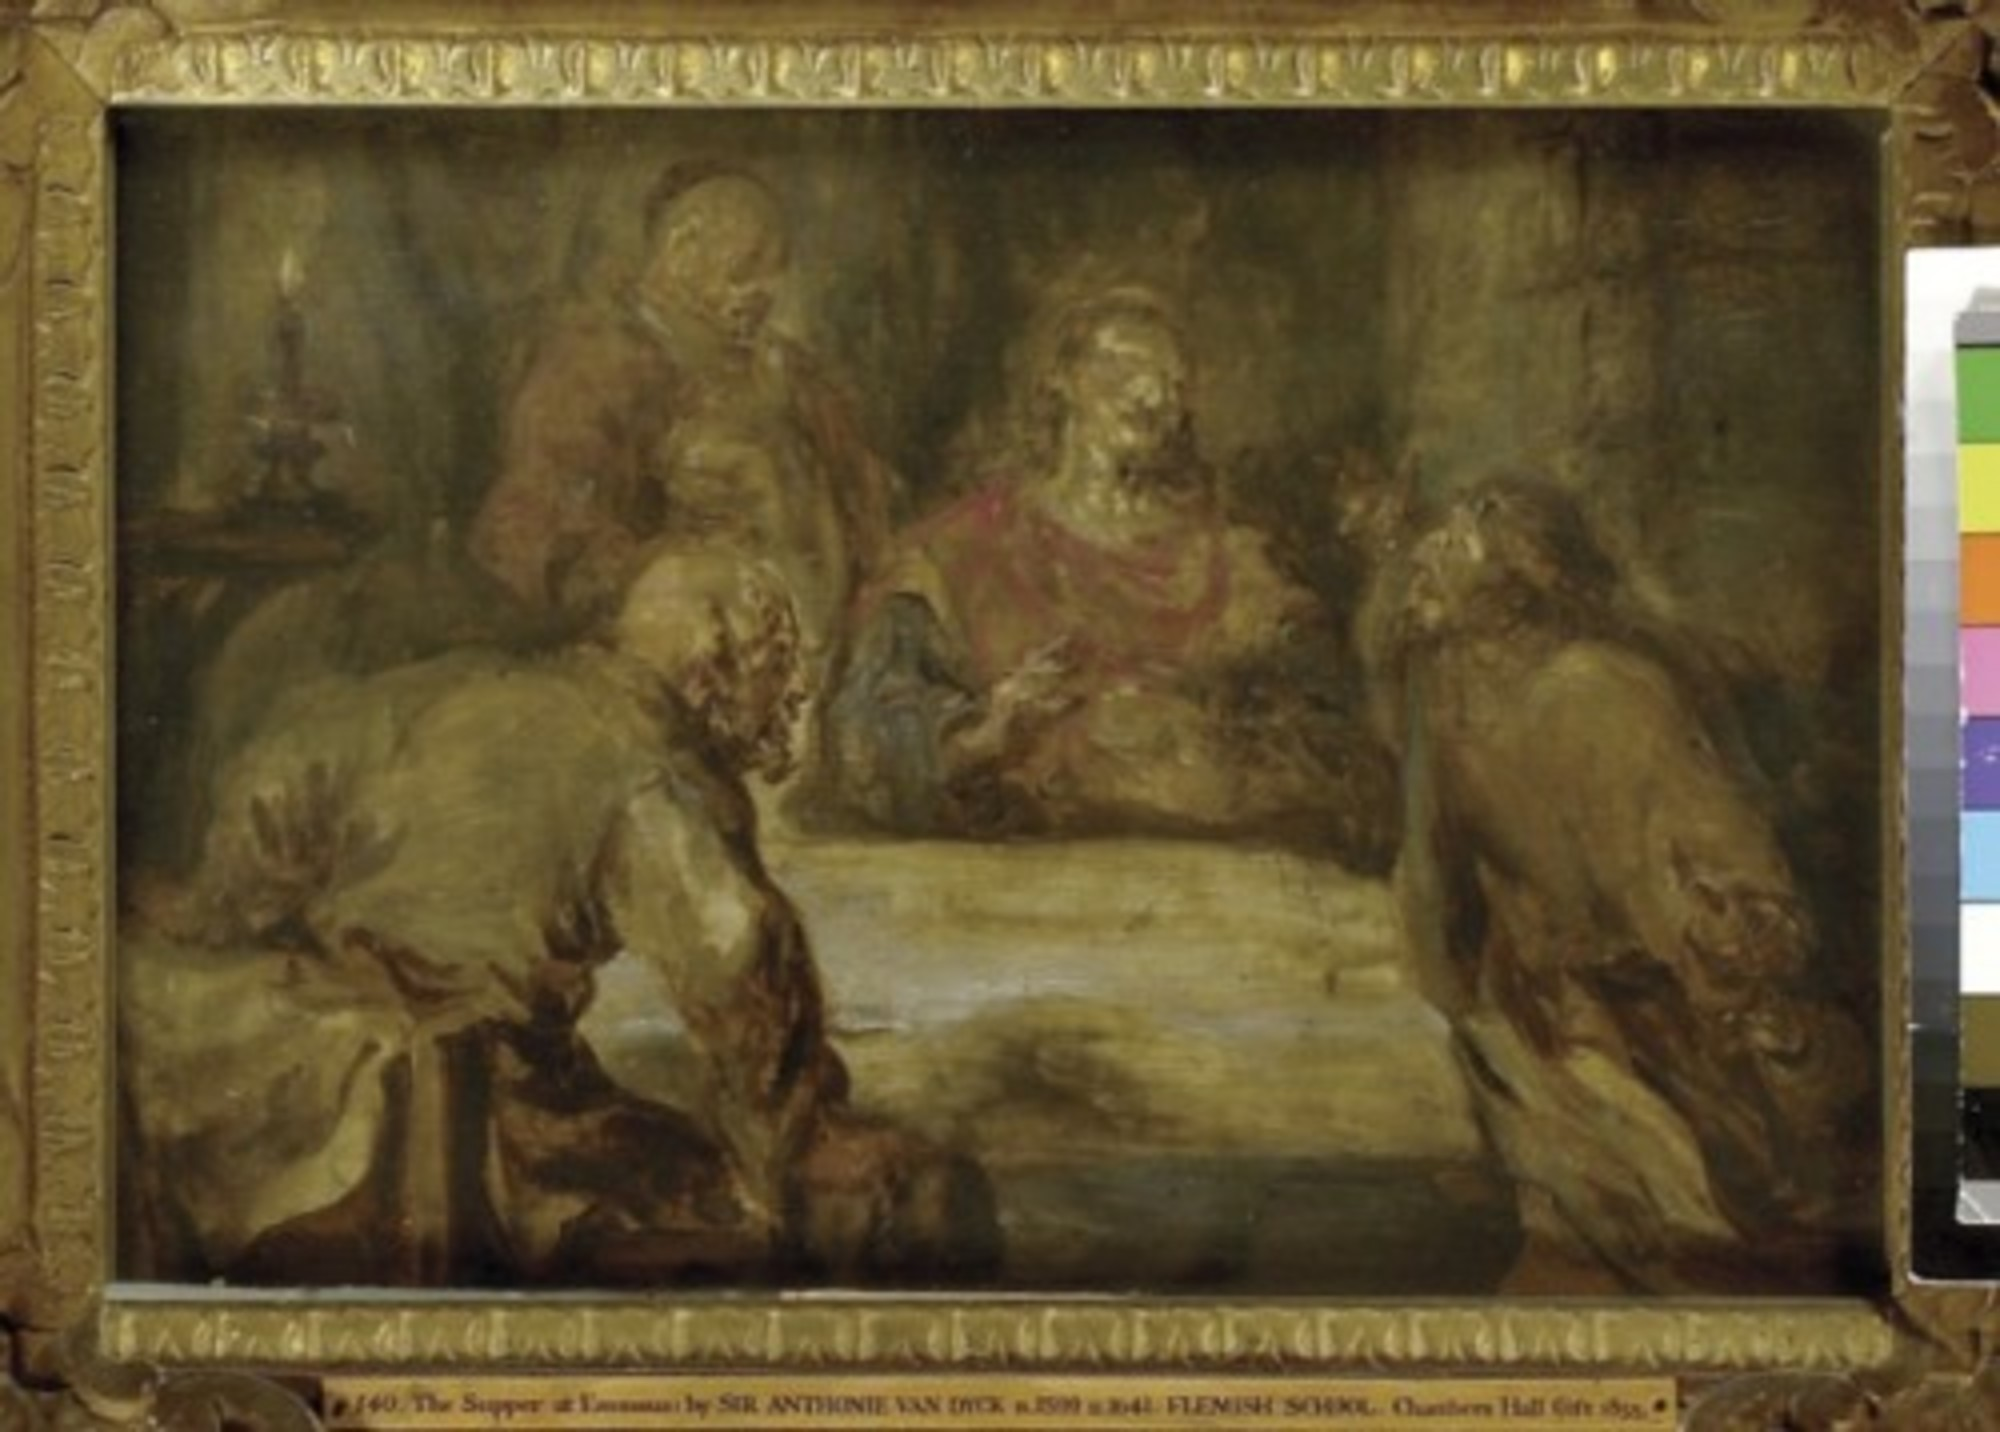 Style-of-Anthony-van-Dyck---The-Supper-at-Emmaus-WA1855.225.jpg